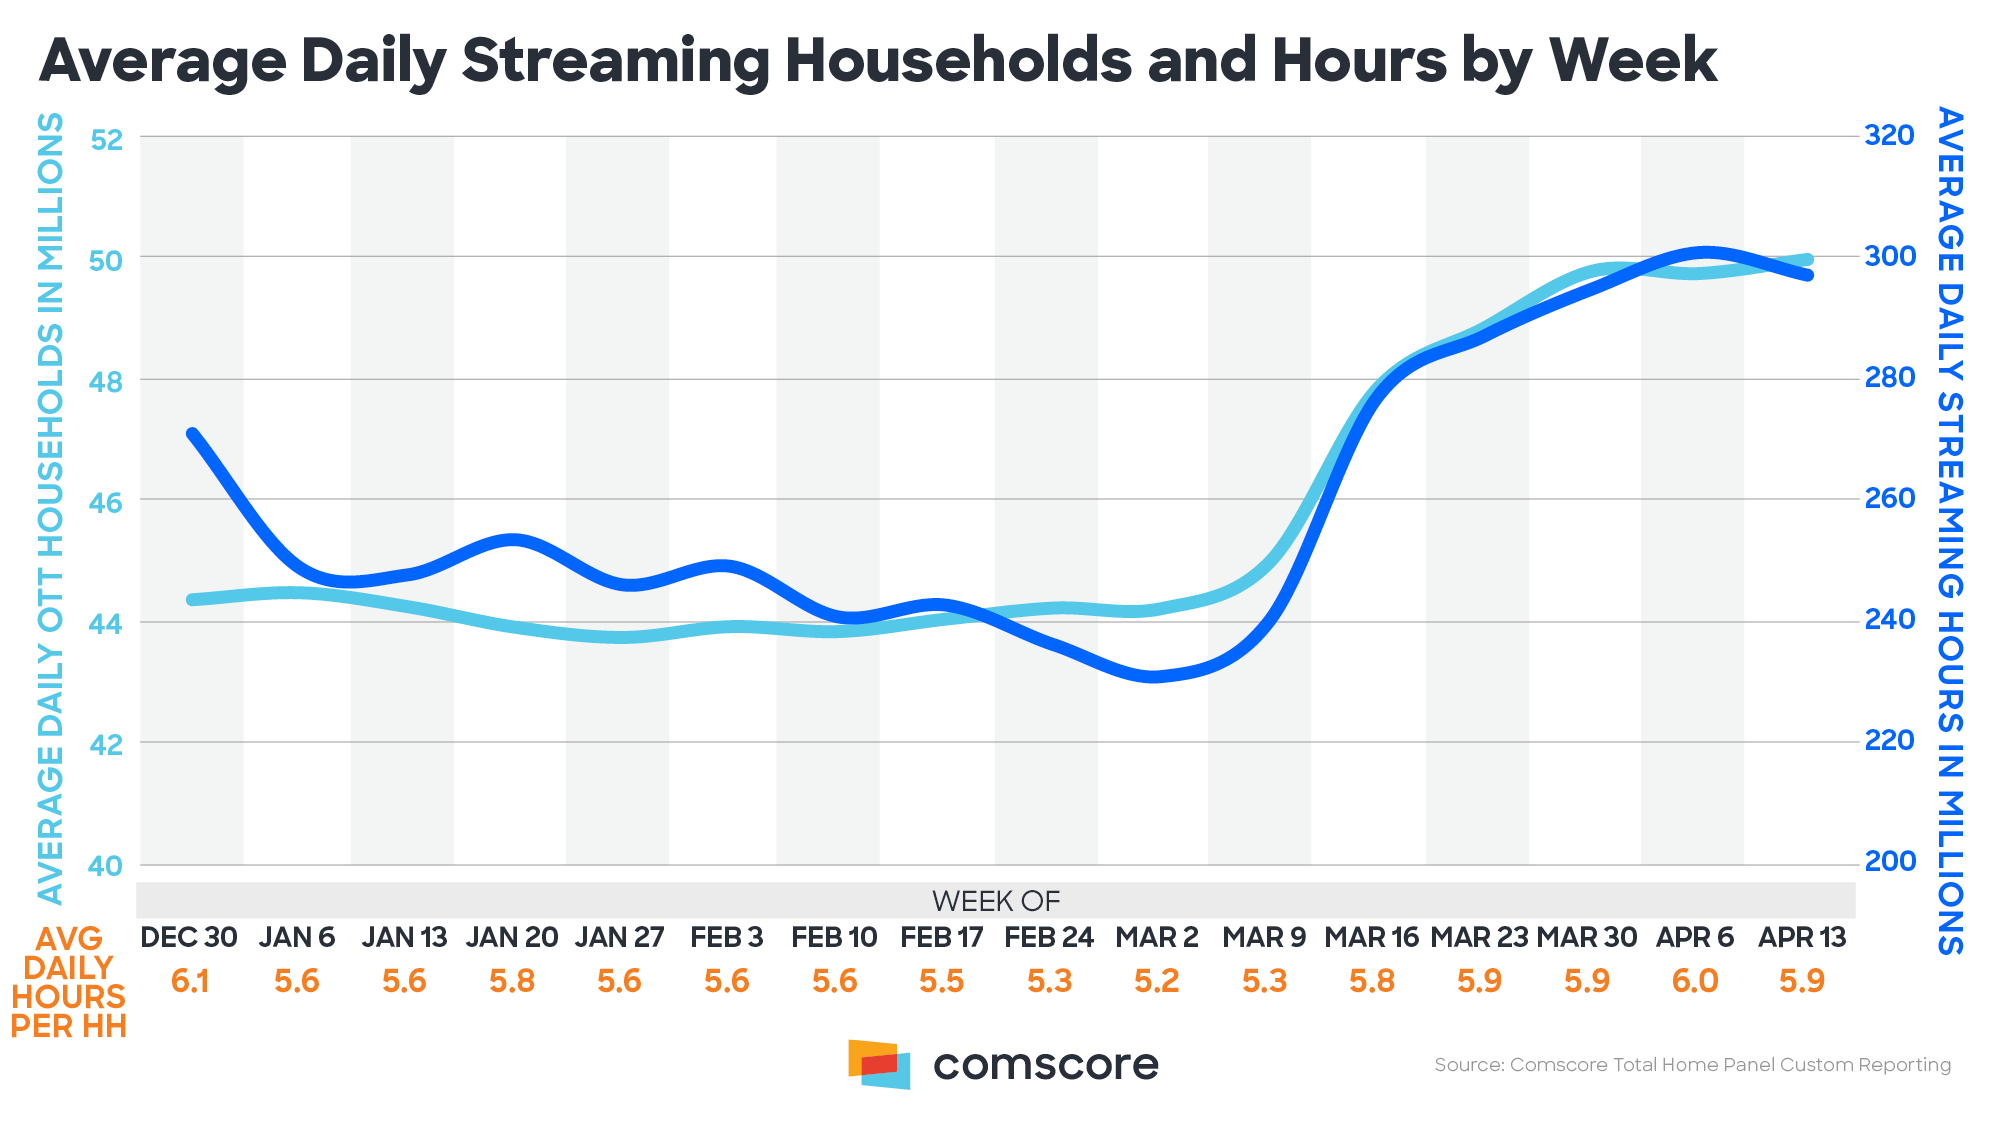 Average Daily Streaming Households and Hours Per Week